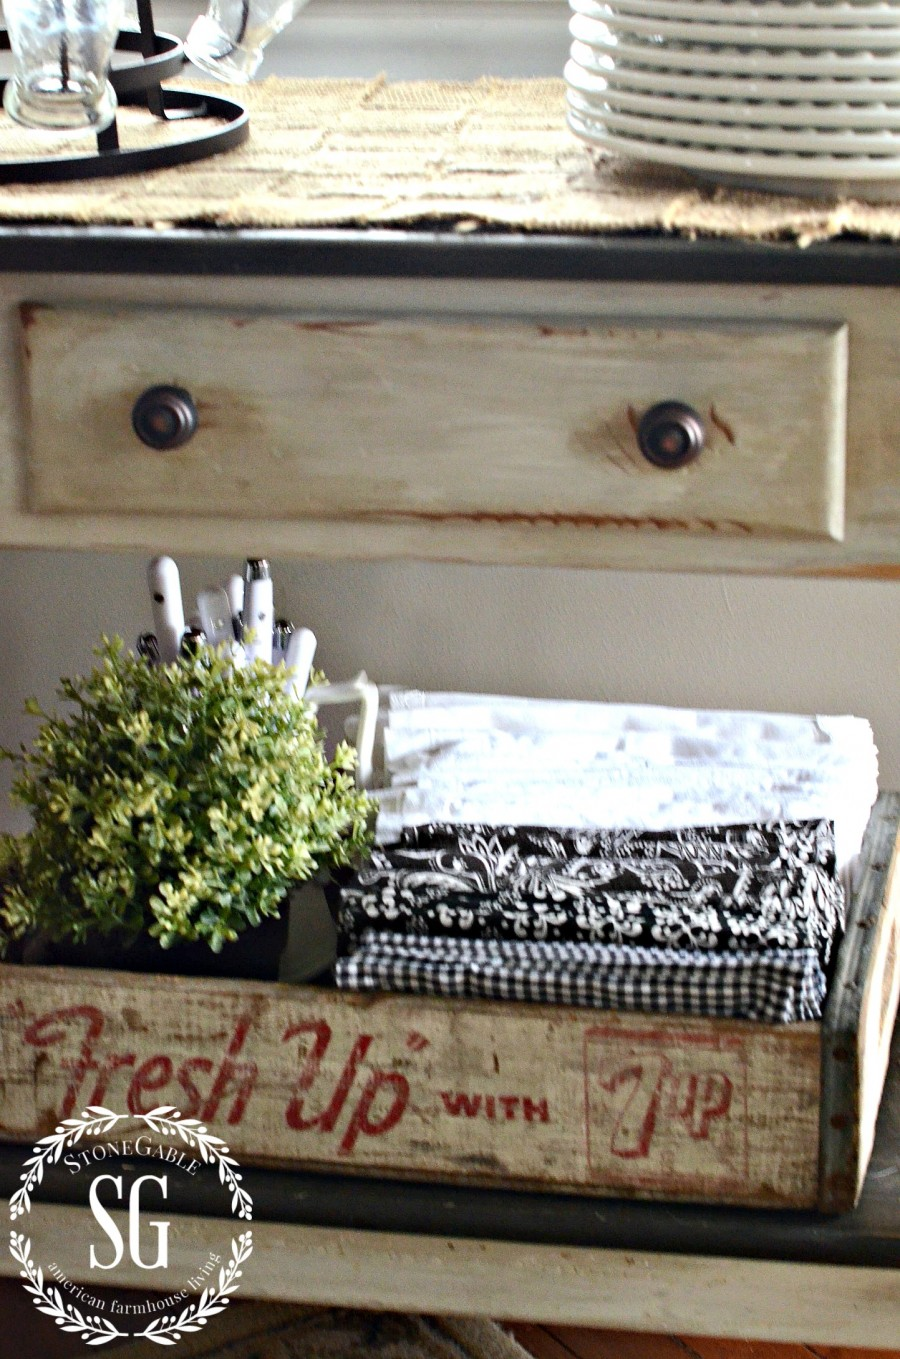 STORING THINGS FARMHOUSE STYLE-crate of napkins-under side table-stonegableblog.com